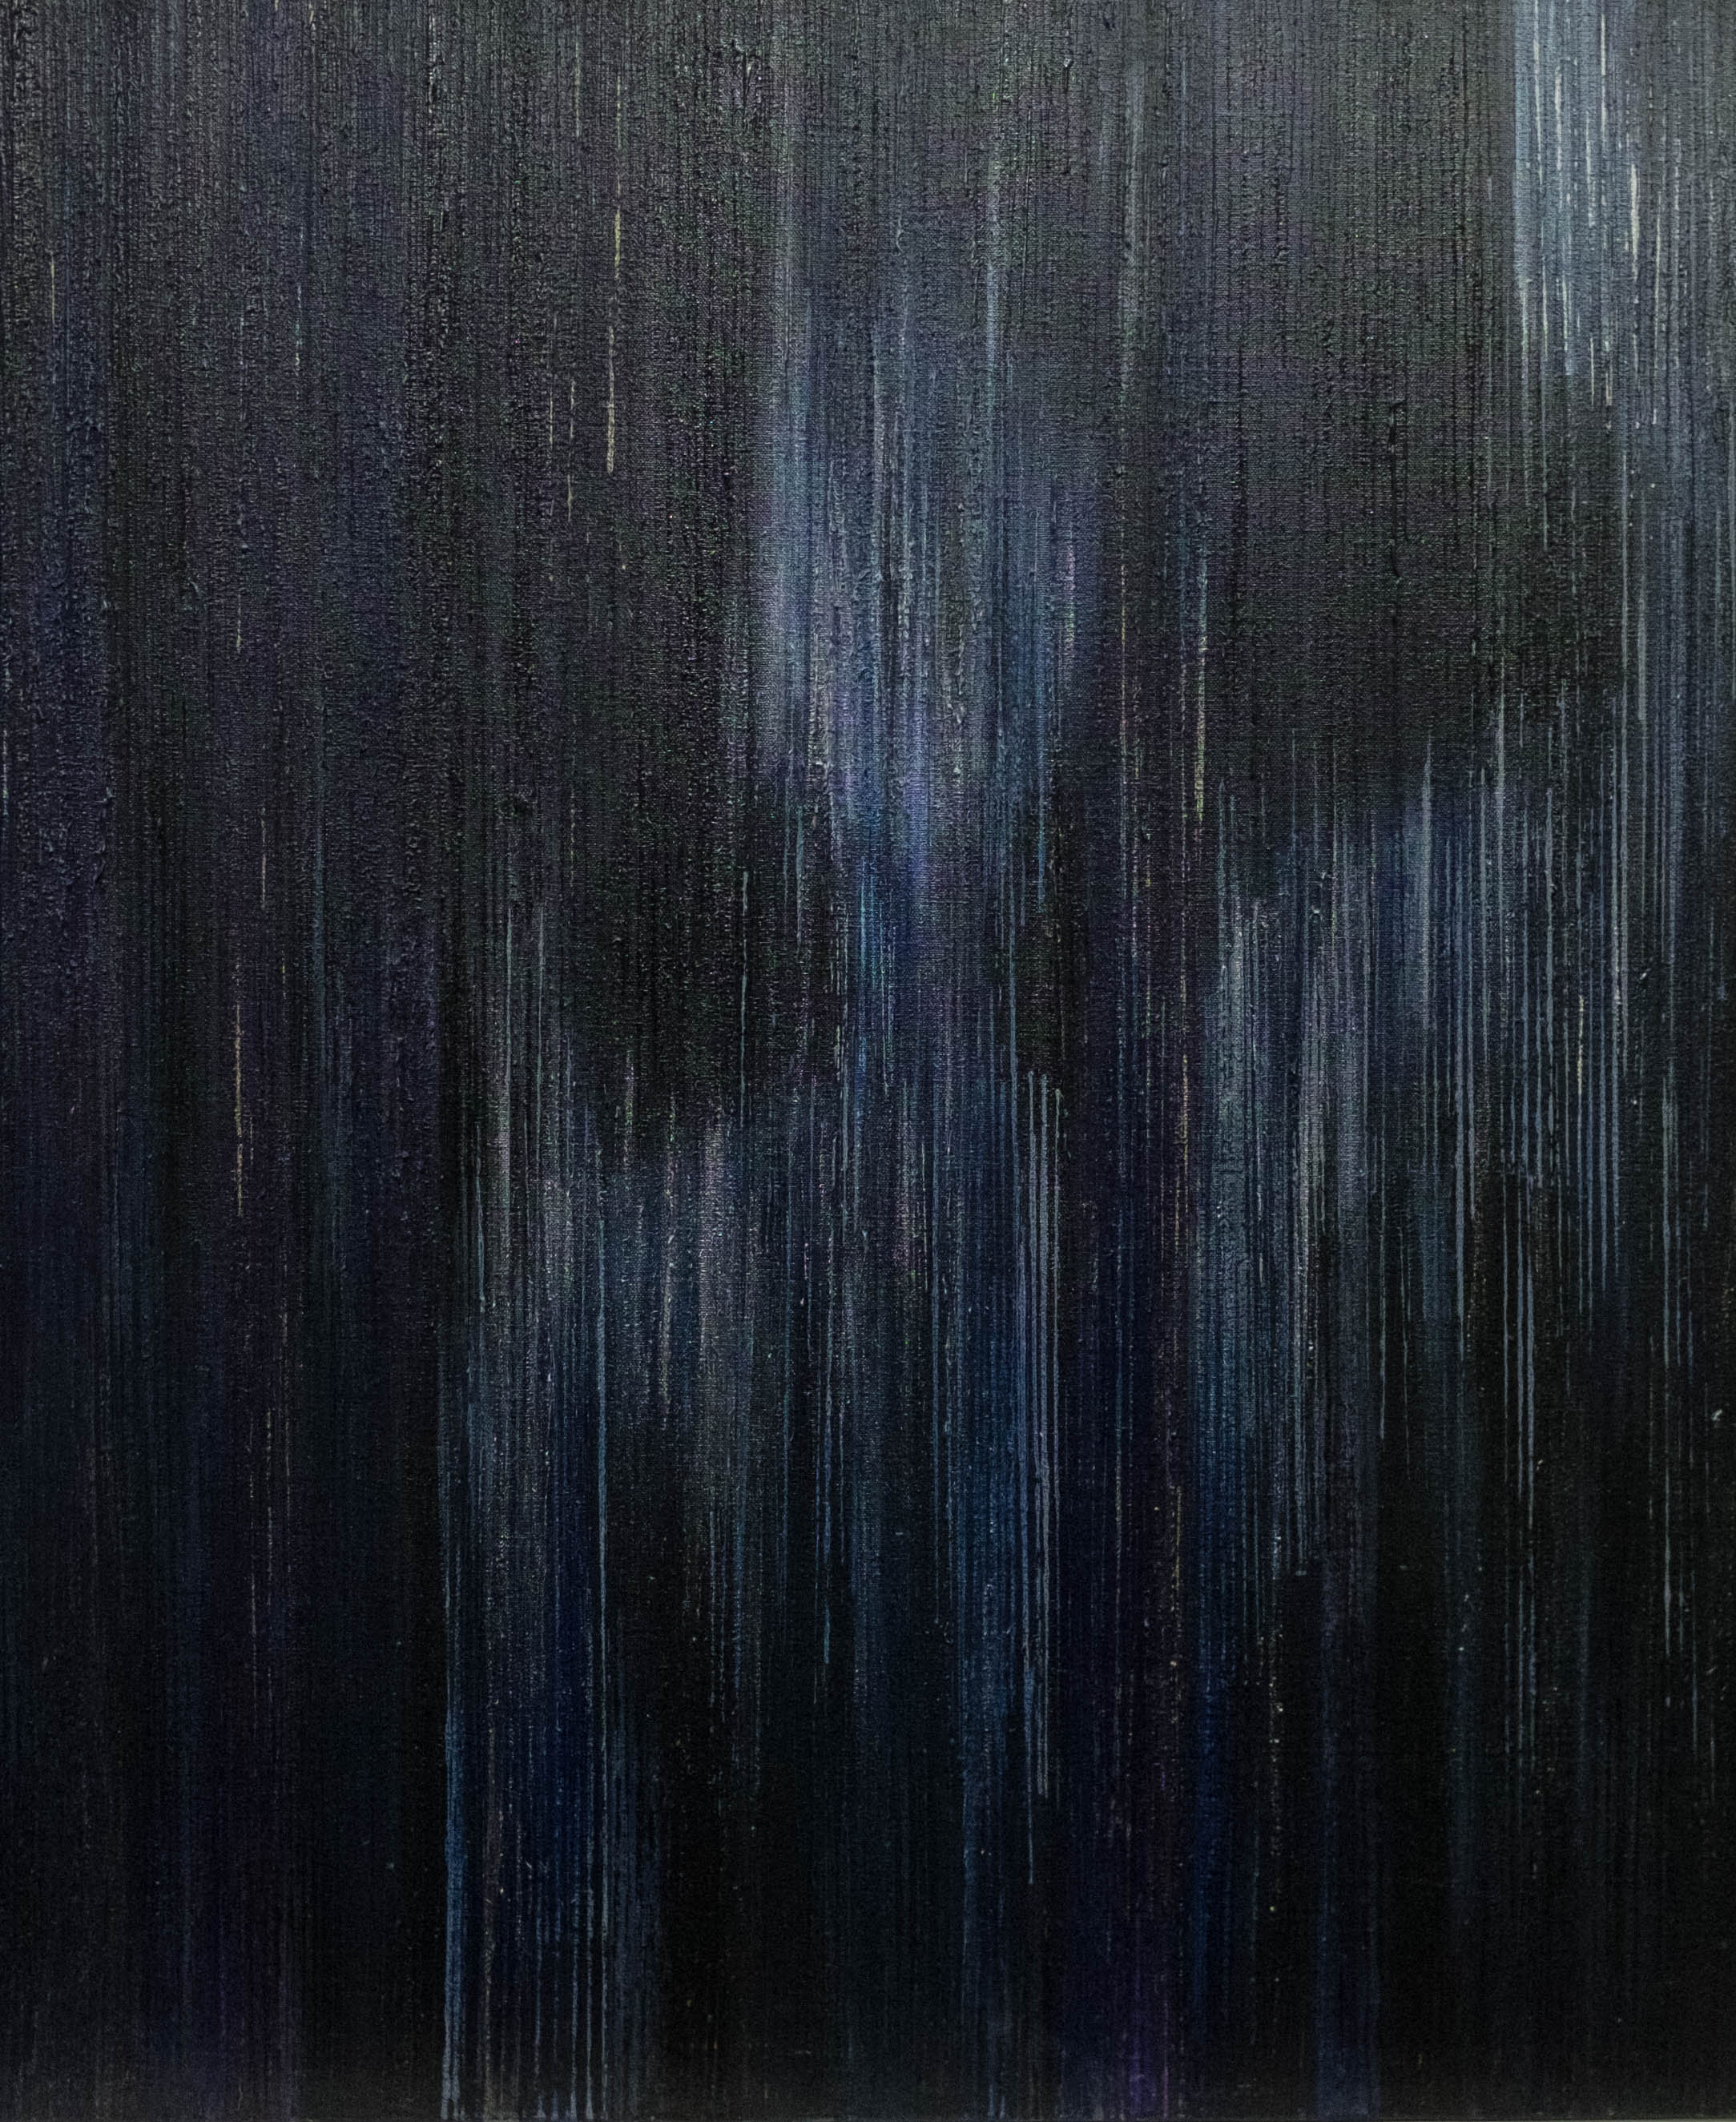 Emergence IV - Black/Blue/Purple -2015